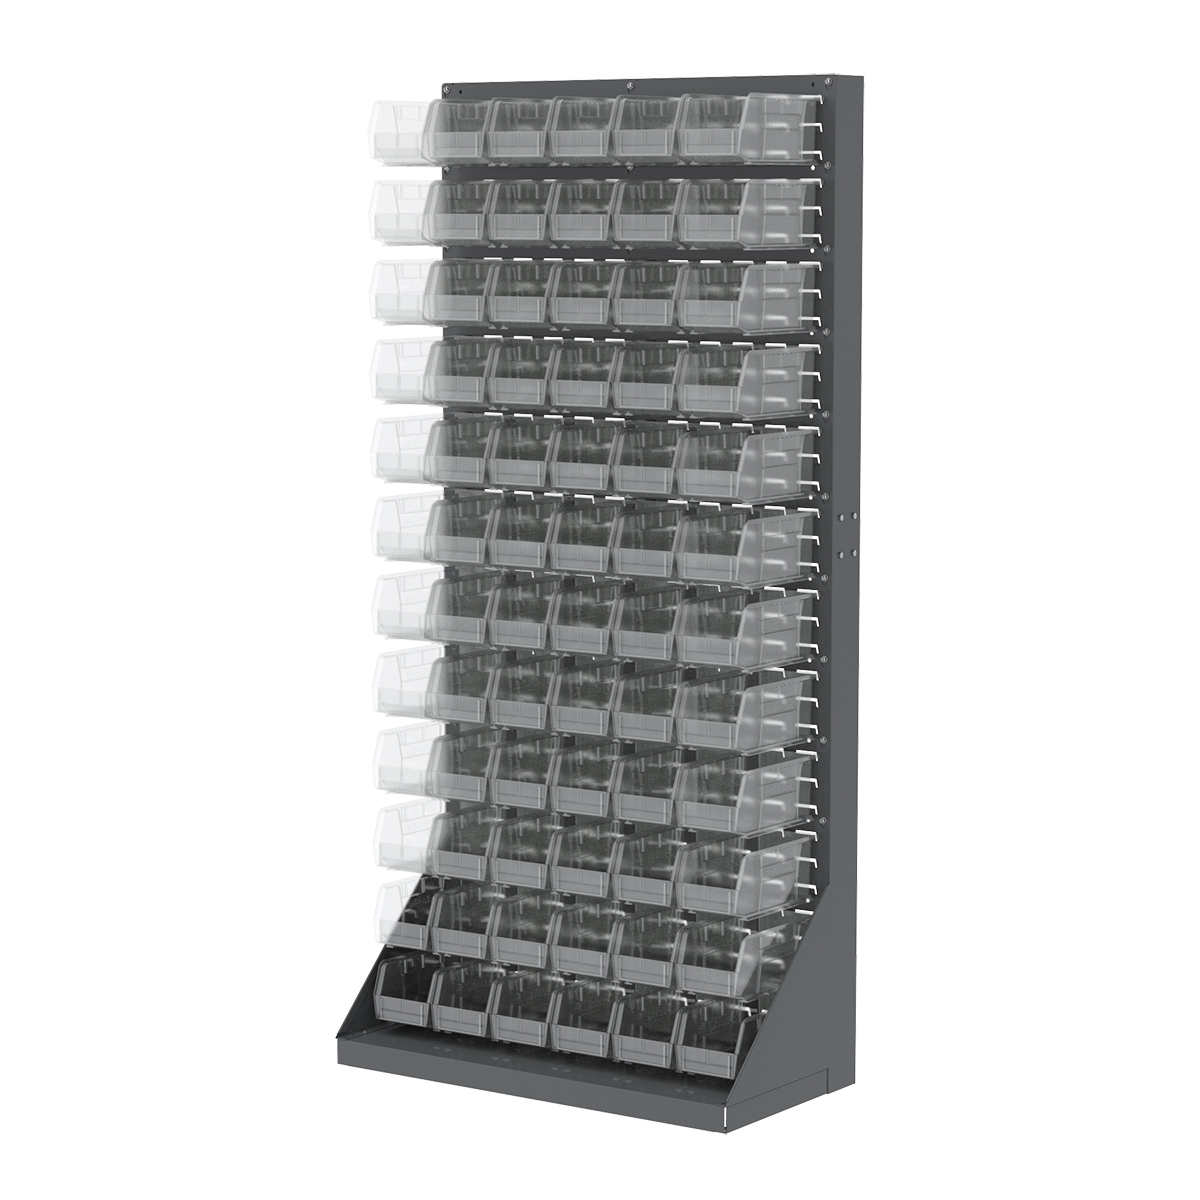 Item DISCONTINUED by Manufacturer.  Heavy-Duty Louvered Floor Rack, 1-Sided, 35-3/4 x 17 x 75, w/ 72 AkroBins 30230SCLAR, Gray/Clear (30651230SC).  This item sold in carton quantities of 1.